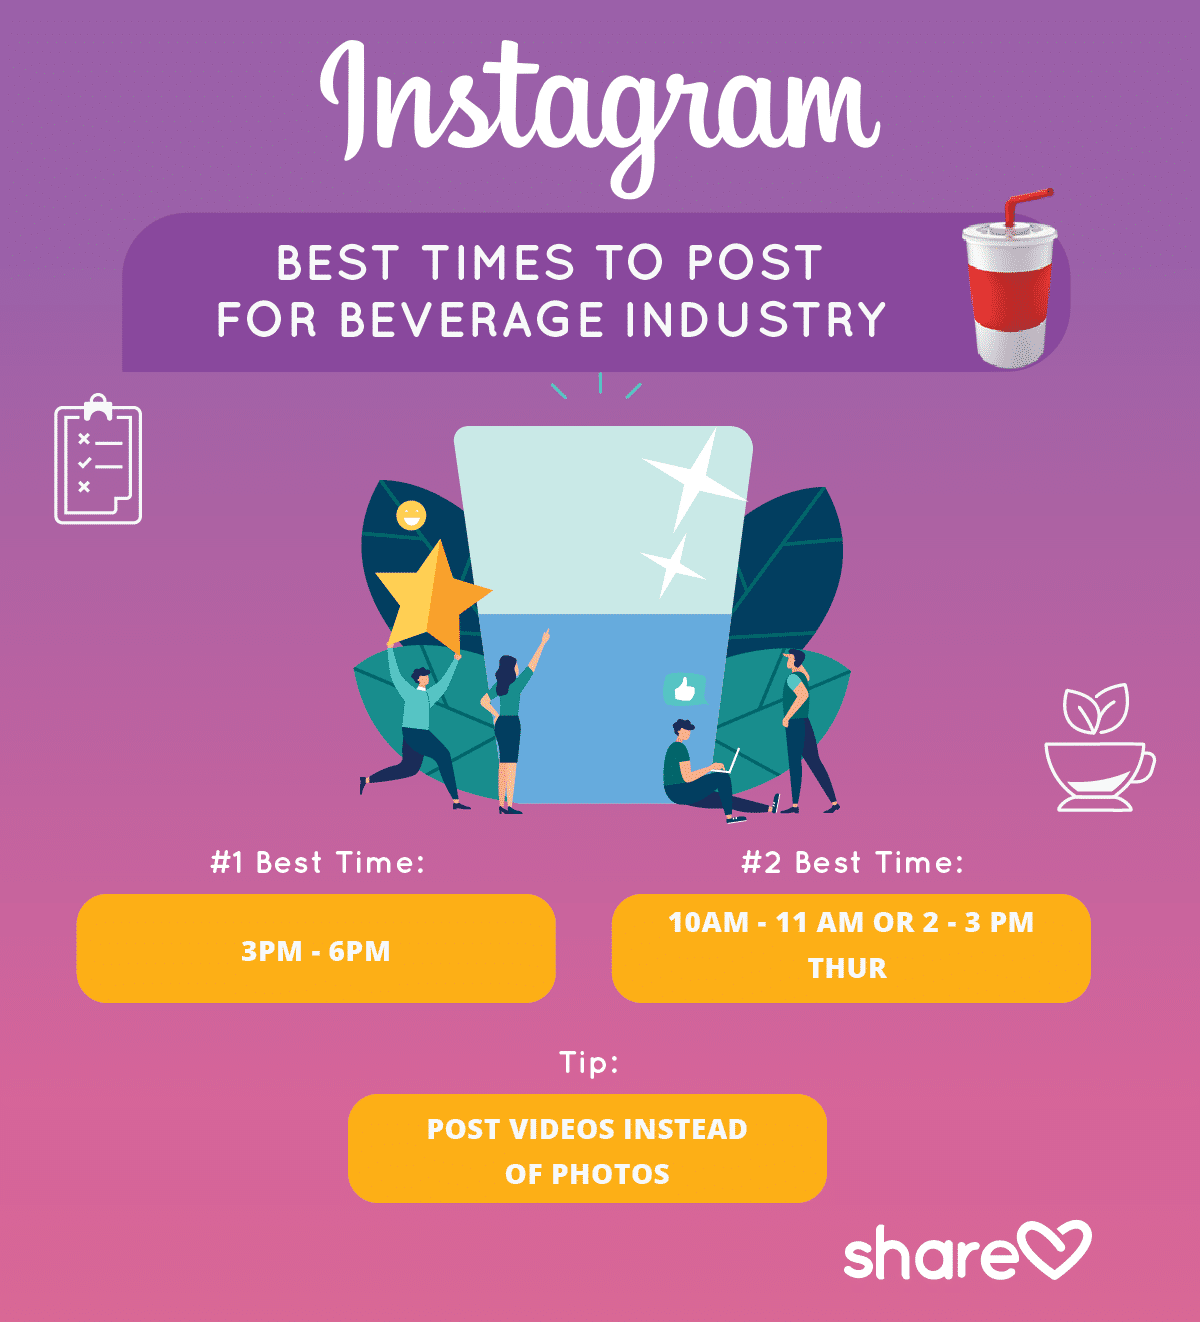 Best times to post on Instagram for beverage industry